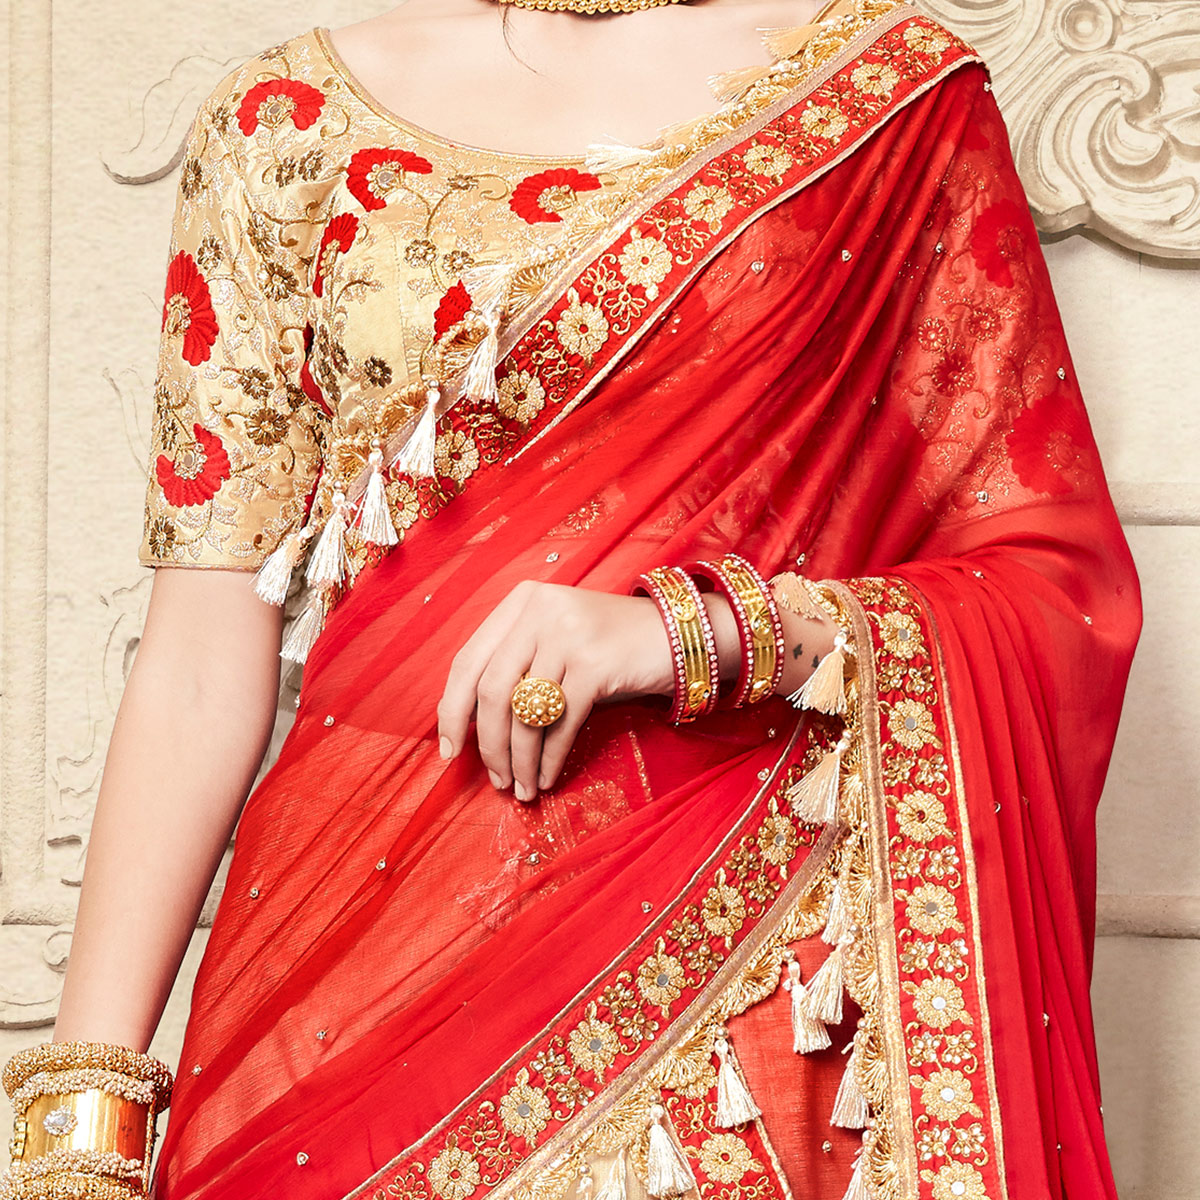 NAKKASHI - Exclusive Beige Colored Party Wear Floral Embroidered Handloom Raw Silk Lehenga Choli